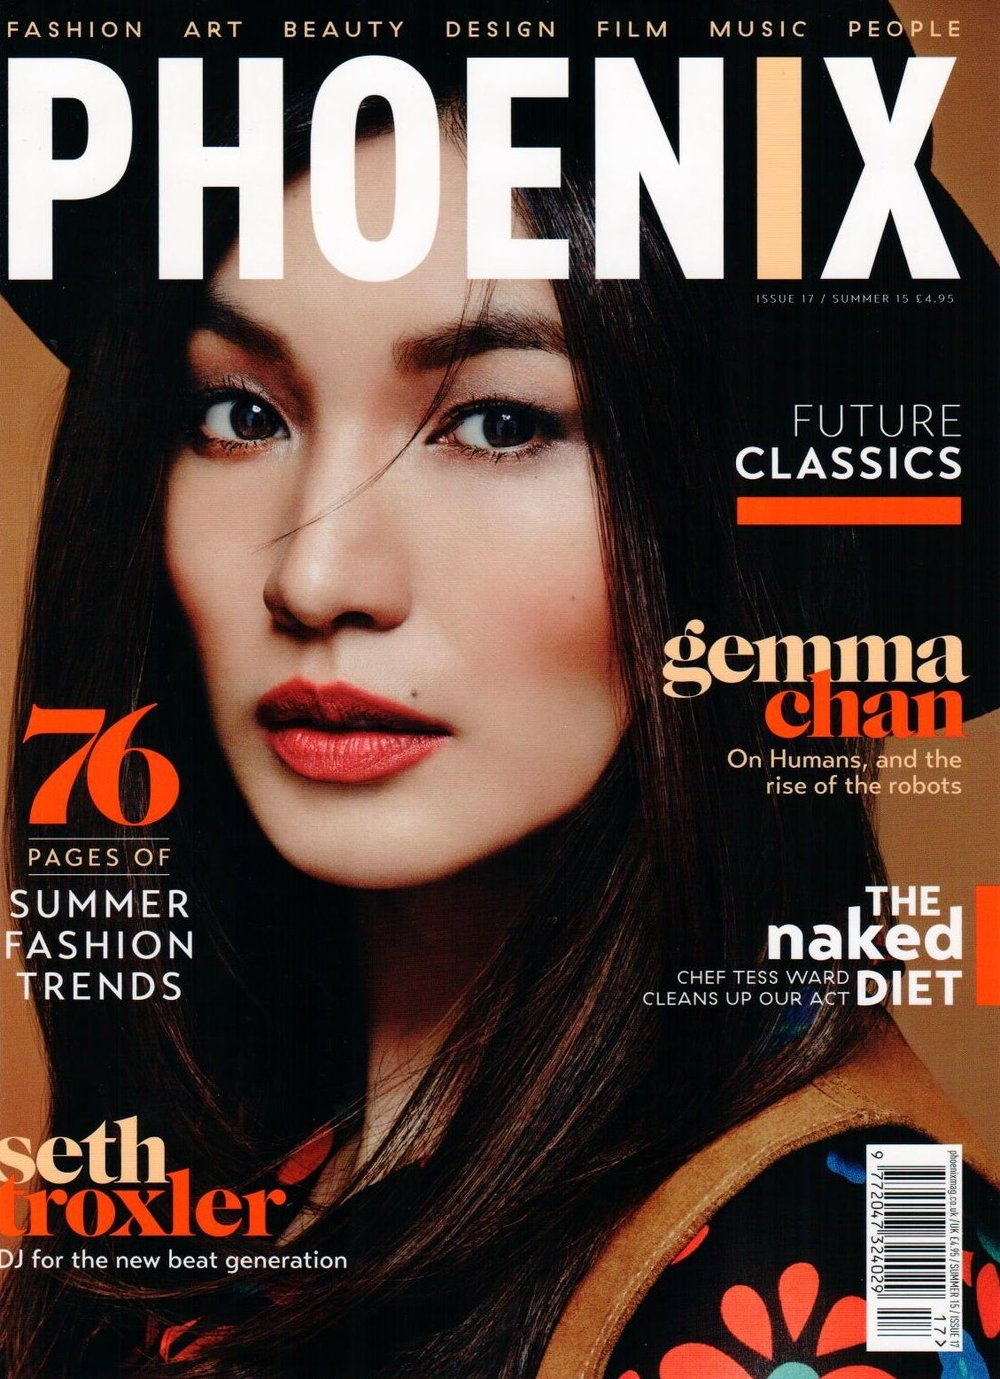 PHOENIX MAGAZINE JULY 2015 PA5H In Phoenix Magazine 'Future Classics' Summer Issue July, 2015.